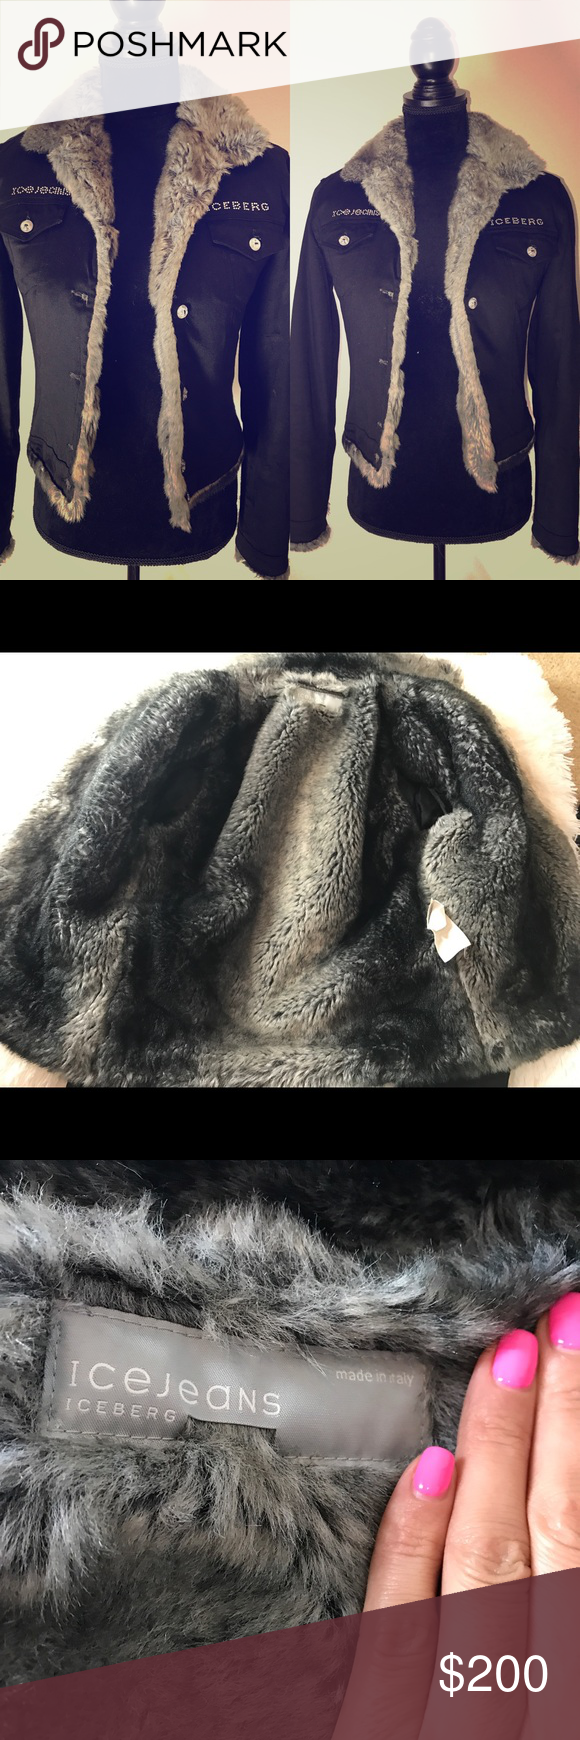 Authentic Vintage Iceberg Fur Jacket Very Pretty On No Missing Rhinestones Faux Fur Excellent Condition No Stains Rips Or S Clothes Design Fur Jacket Fashion [ 1740 x 580 Pixel ]